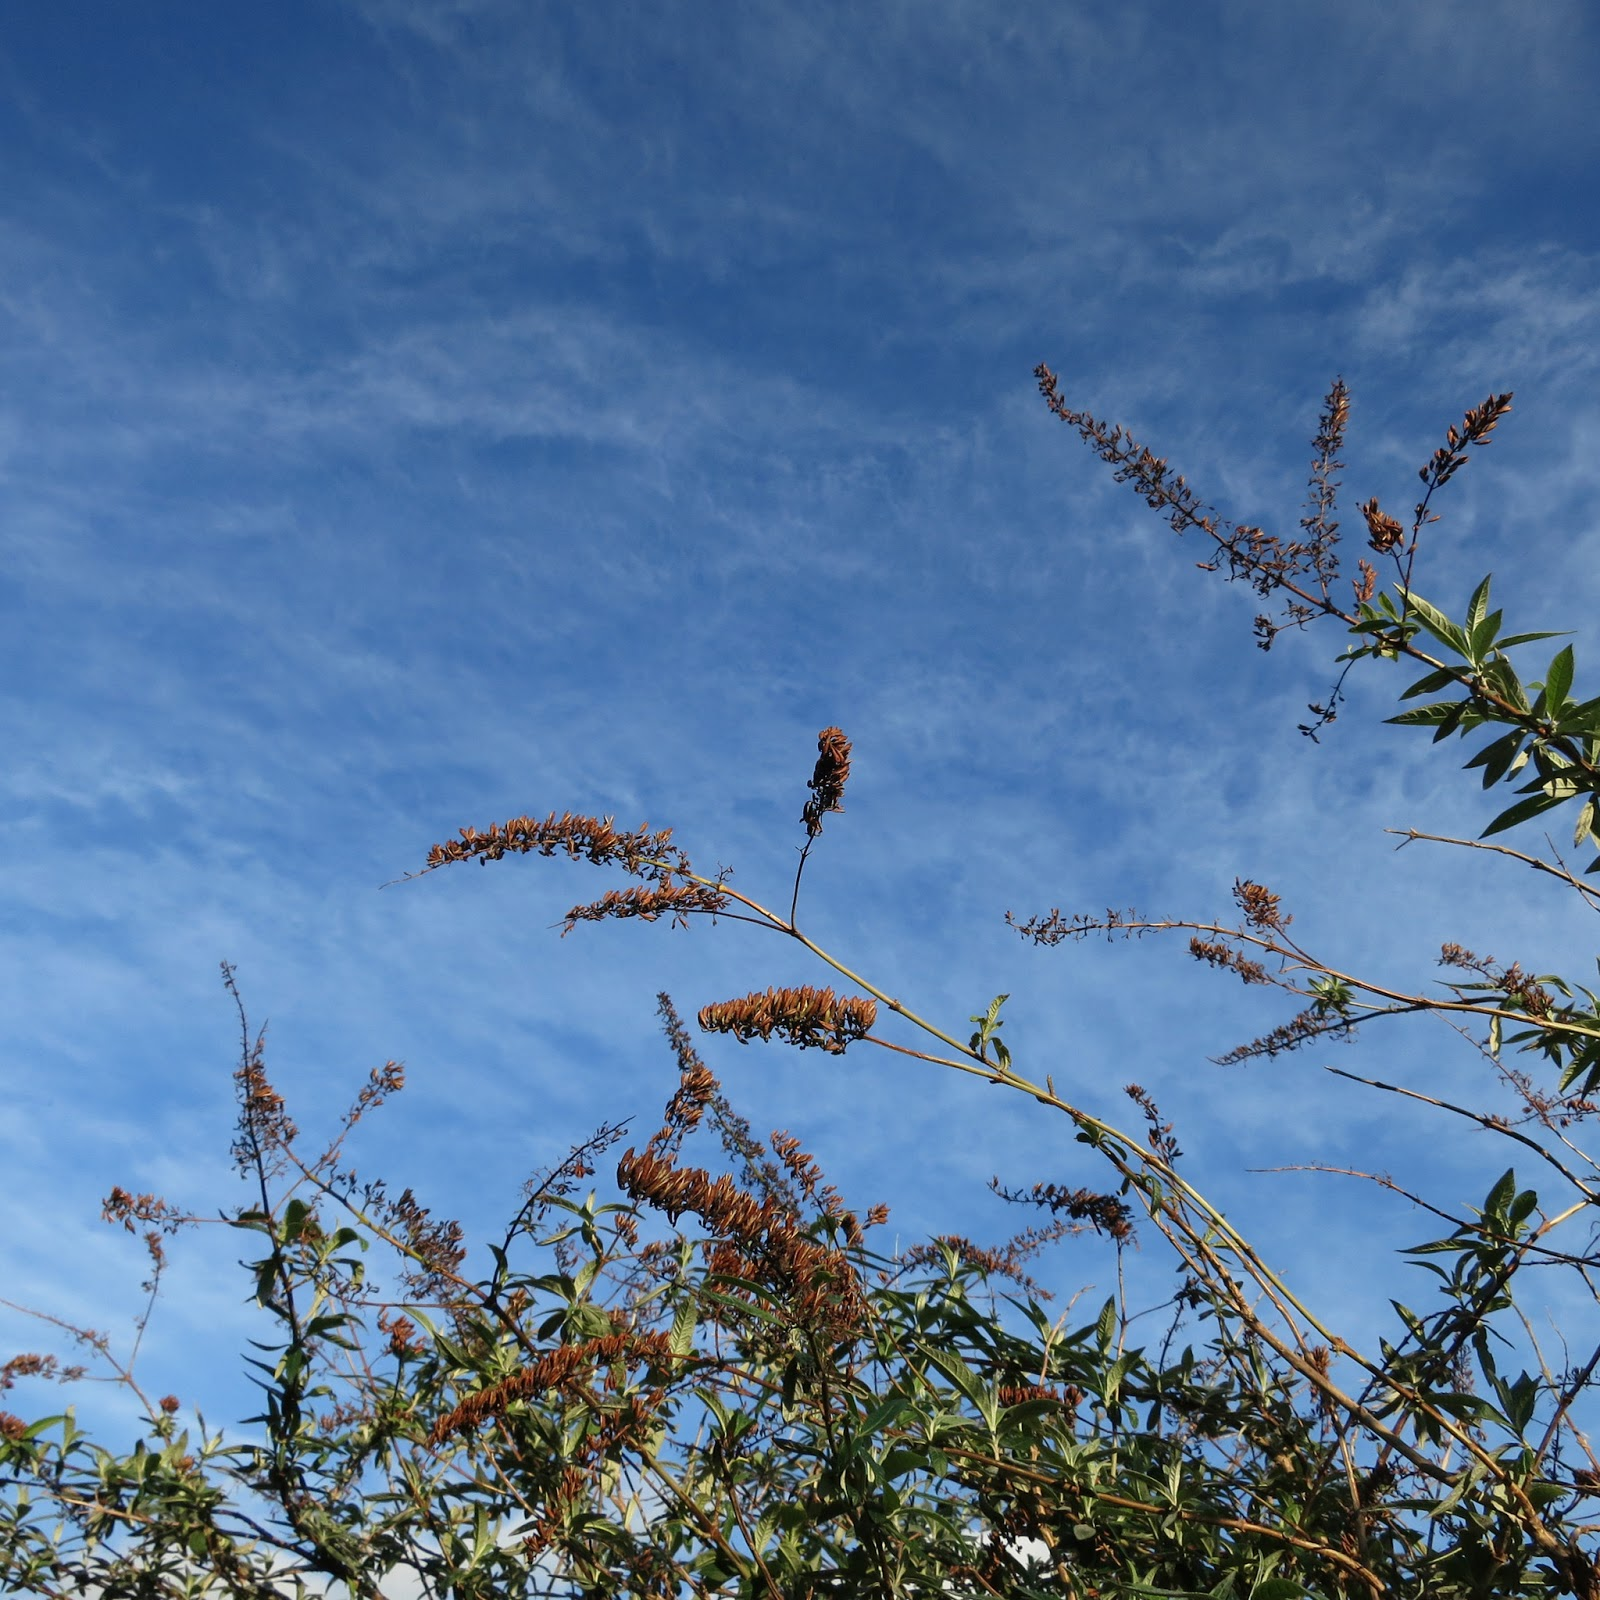 Buddleia against a flecked sky.